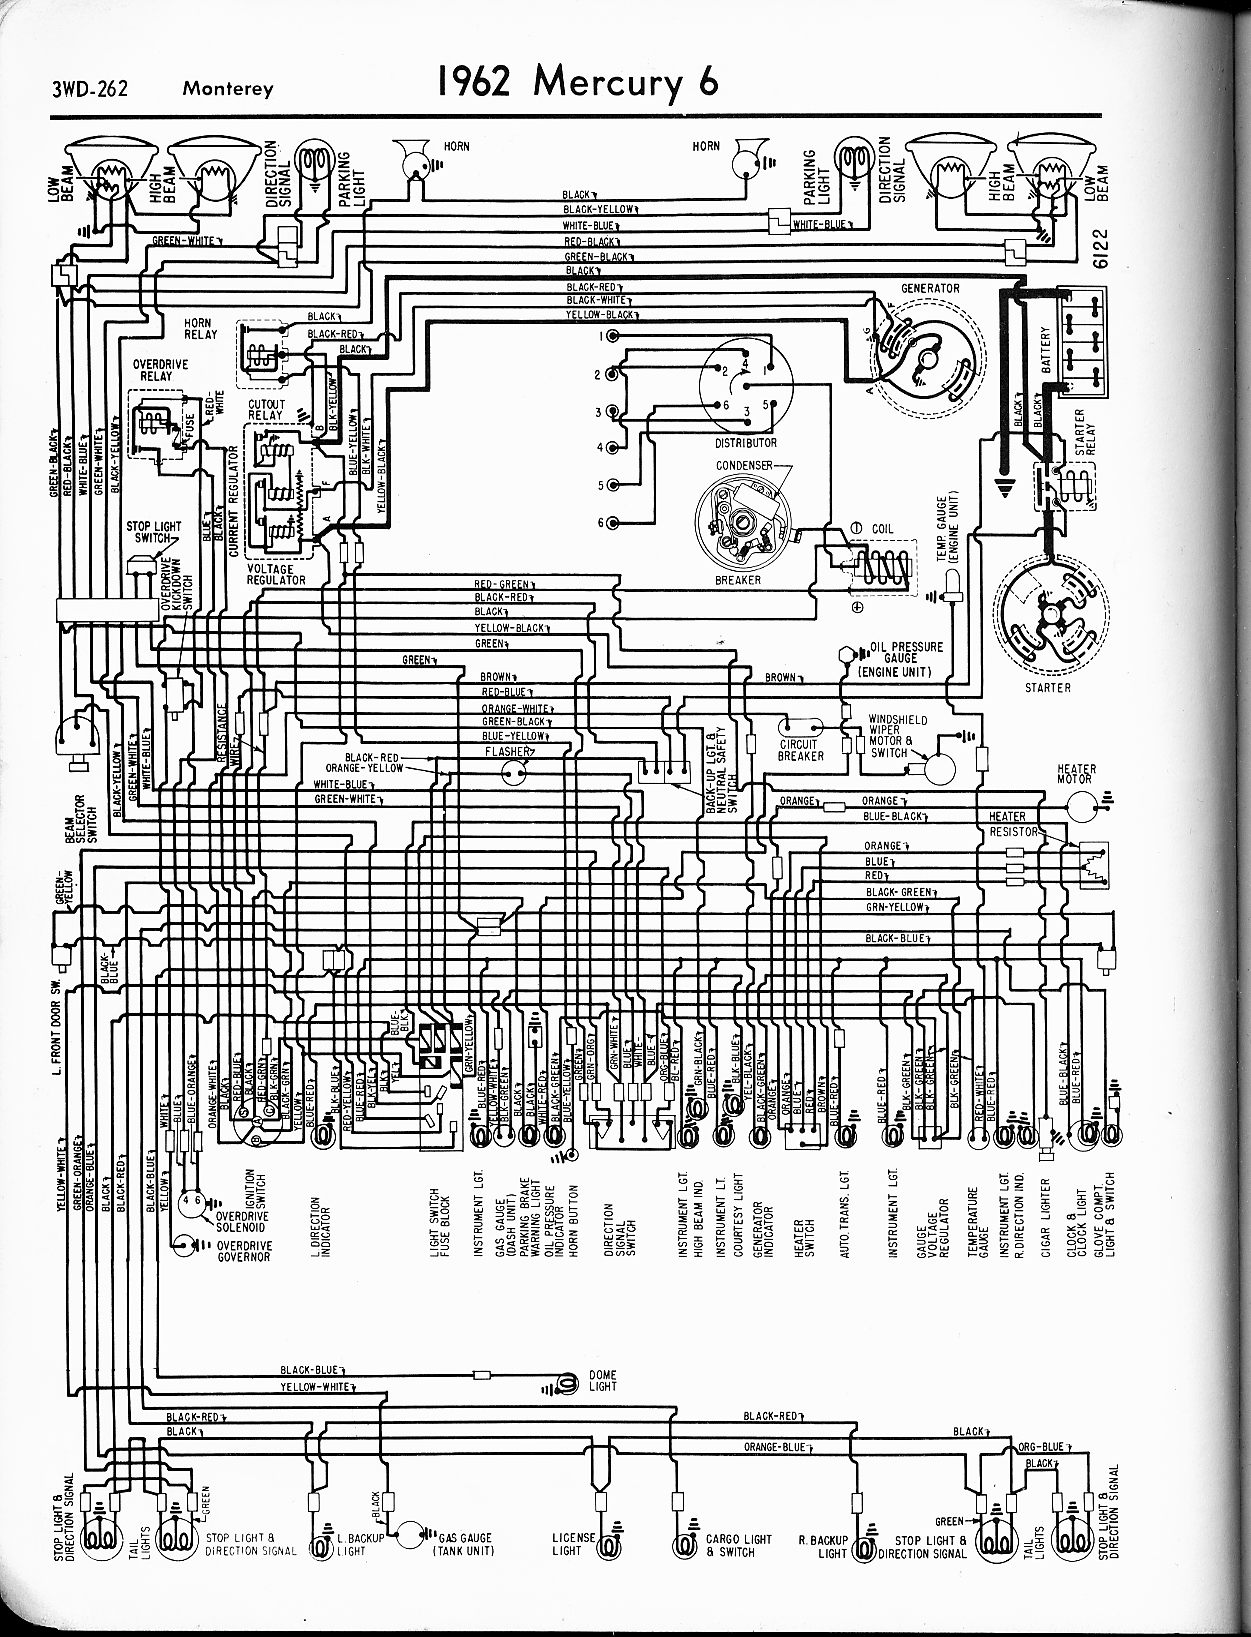 mercury wiring diagrams the old car manual project rh oldcarmanualproject com 2006 Mercury Milan Engine Diagram Mercury Outboard Engine Parts Diagram